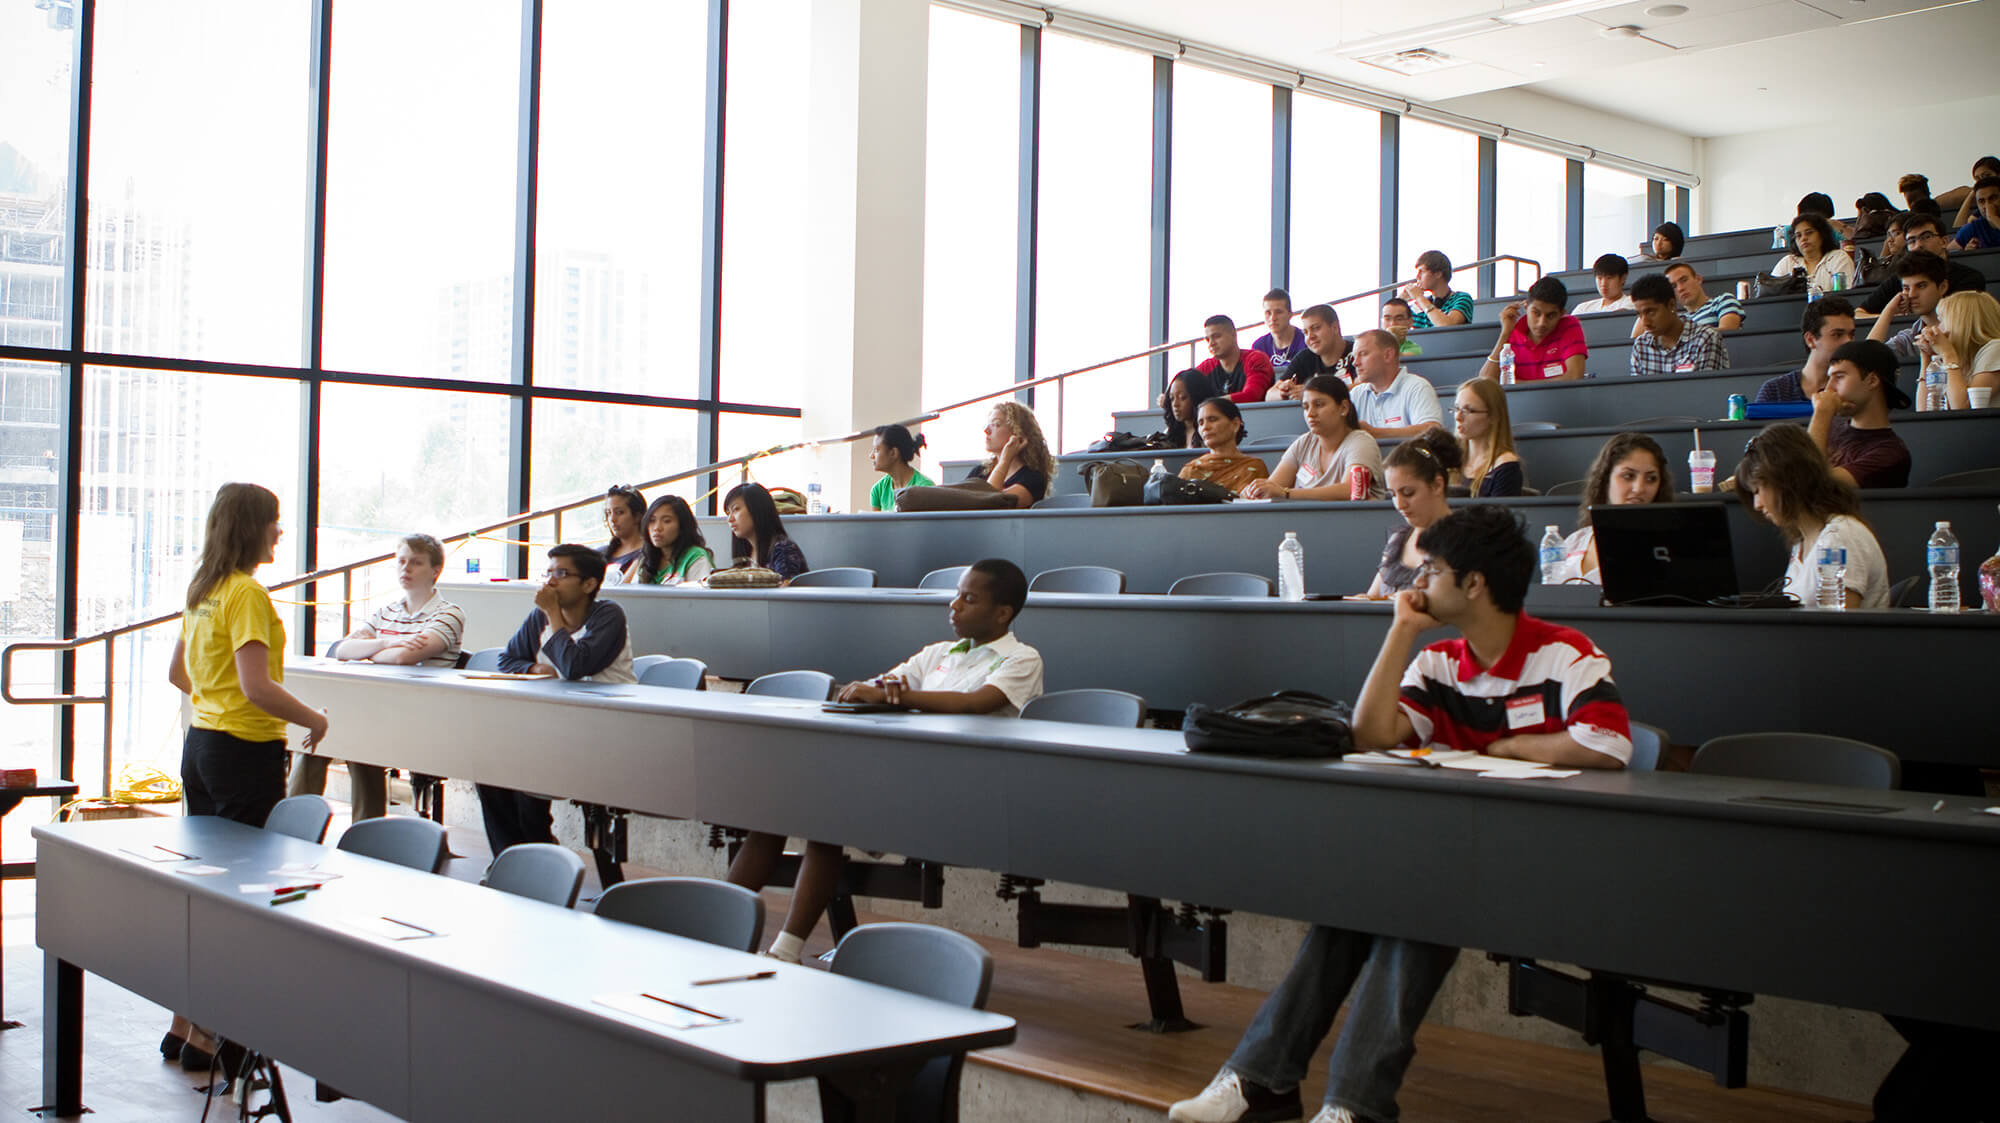 Many students and a teacher in a tiered lecture hall with a wall of windows